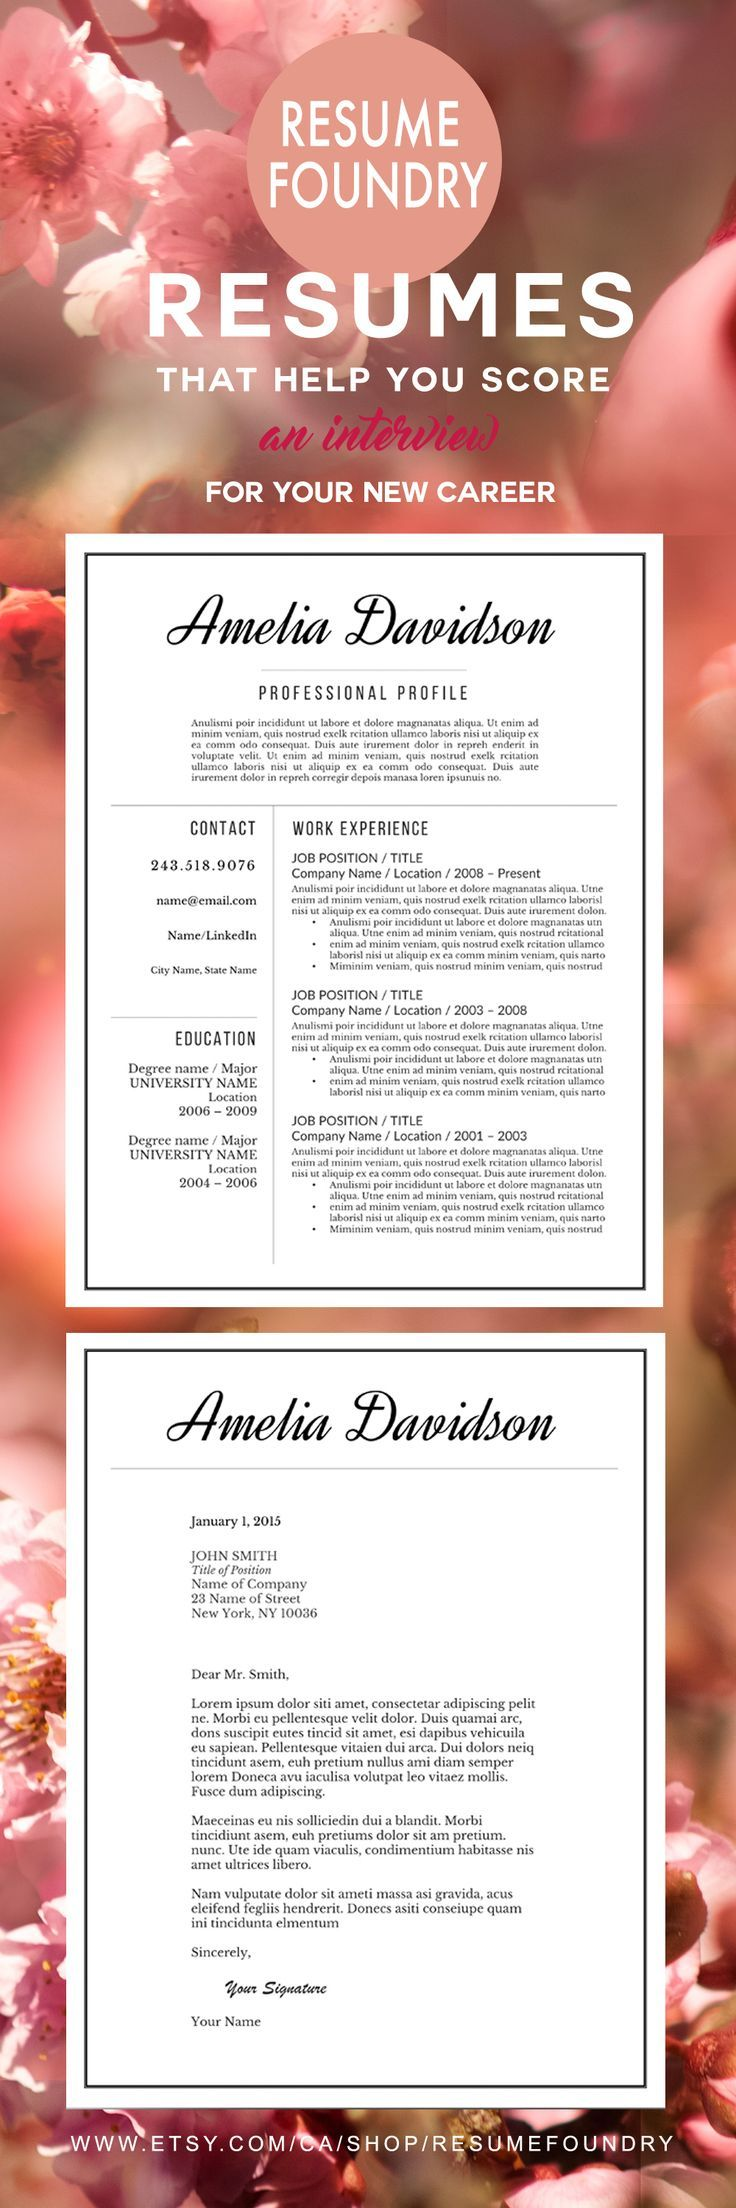 receptionist sample resume%0A Beautiful resume template from Resume Foundry